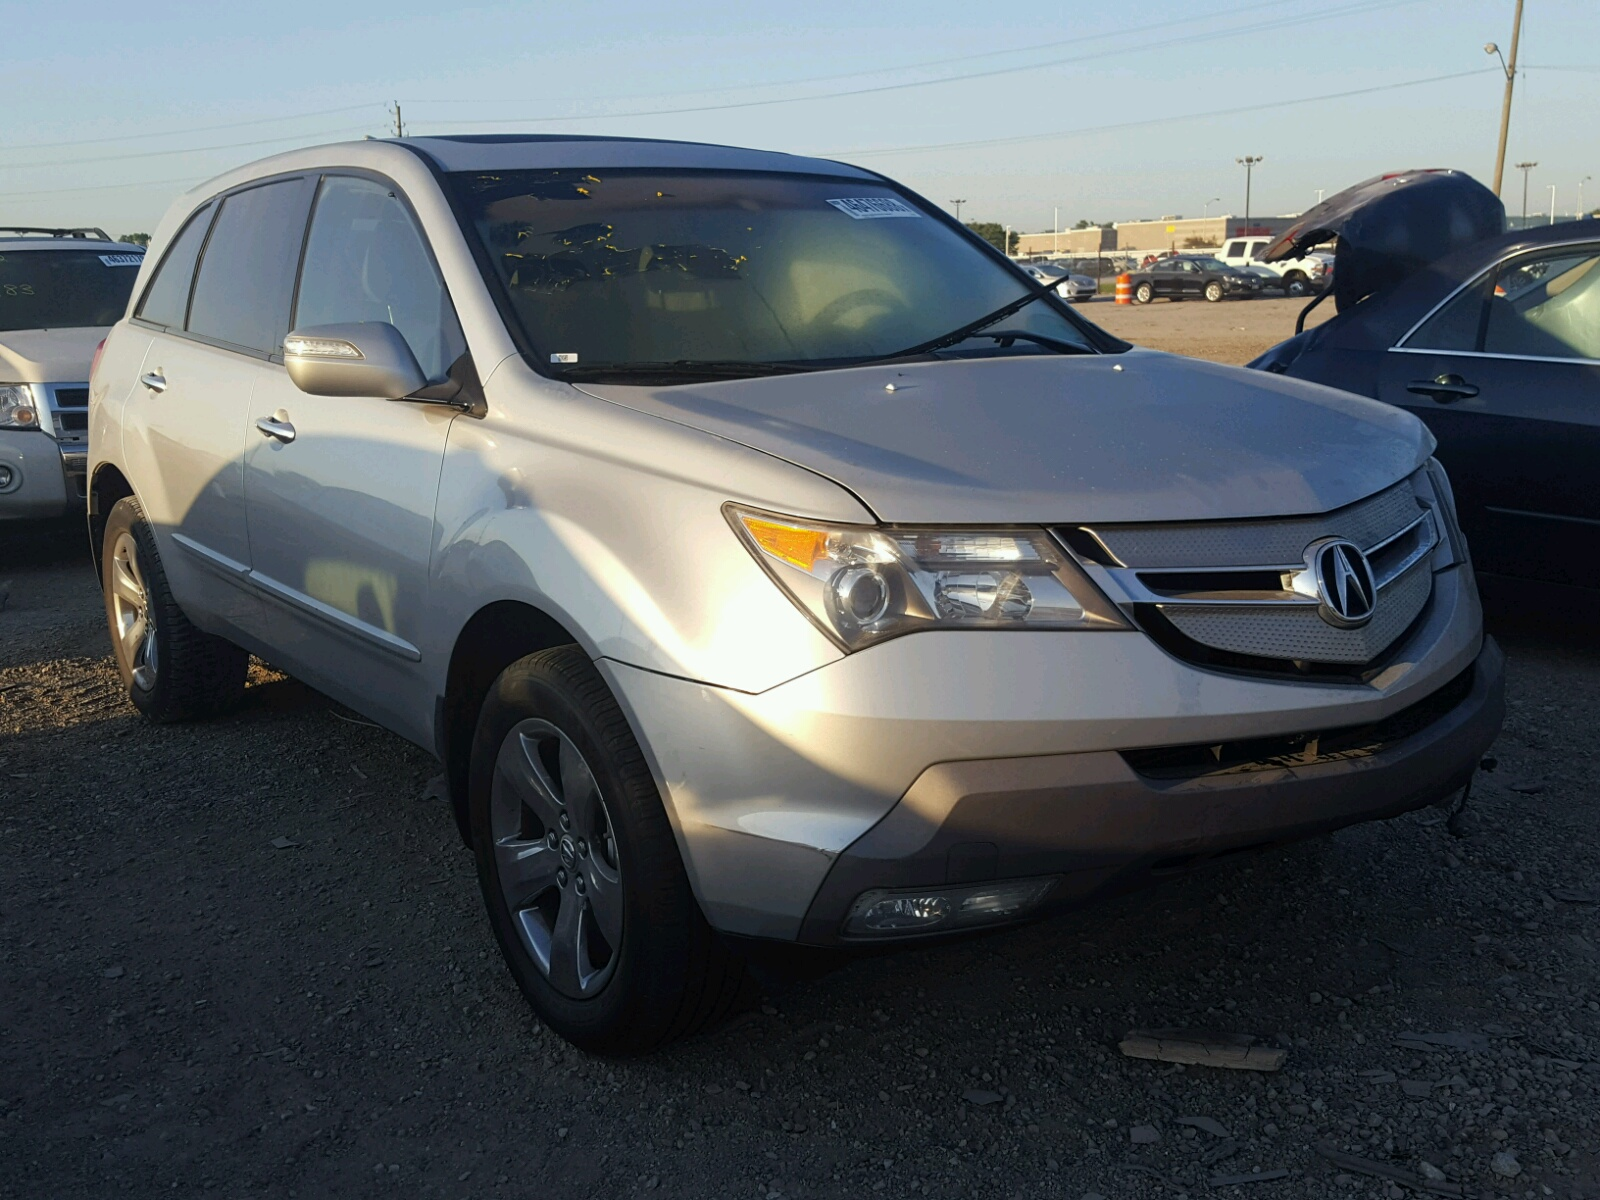 Acura MDX Sport For Sale At Copart Indianapolis IN Lot - Acura mdx 2007 for sale